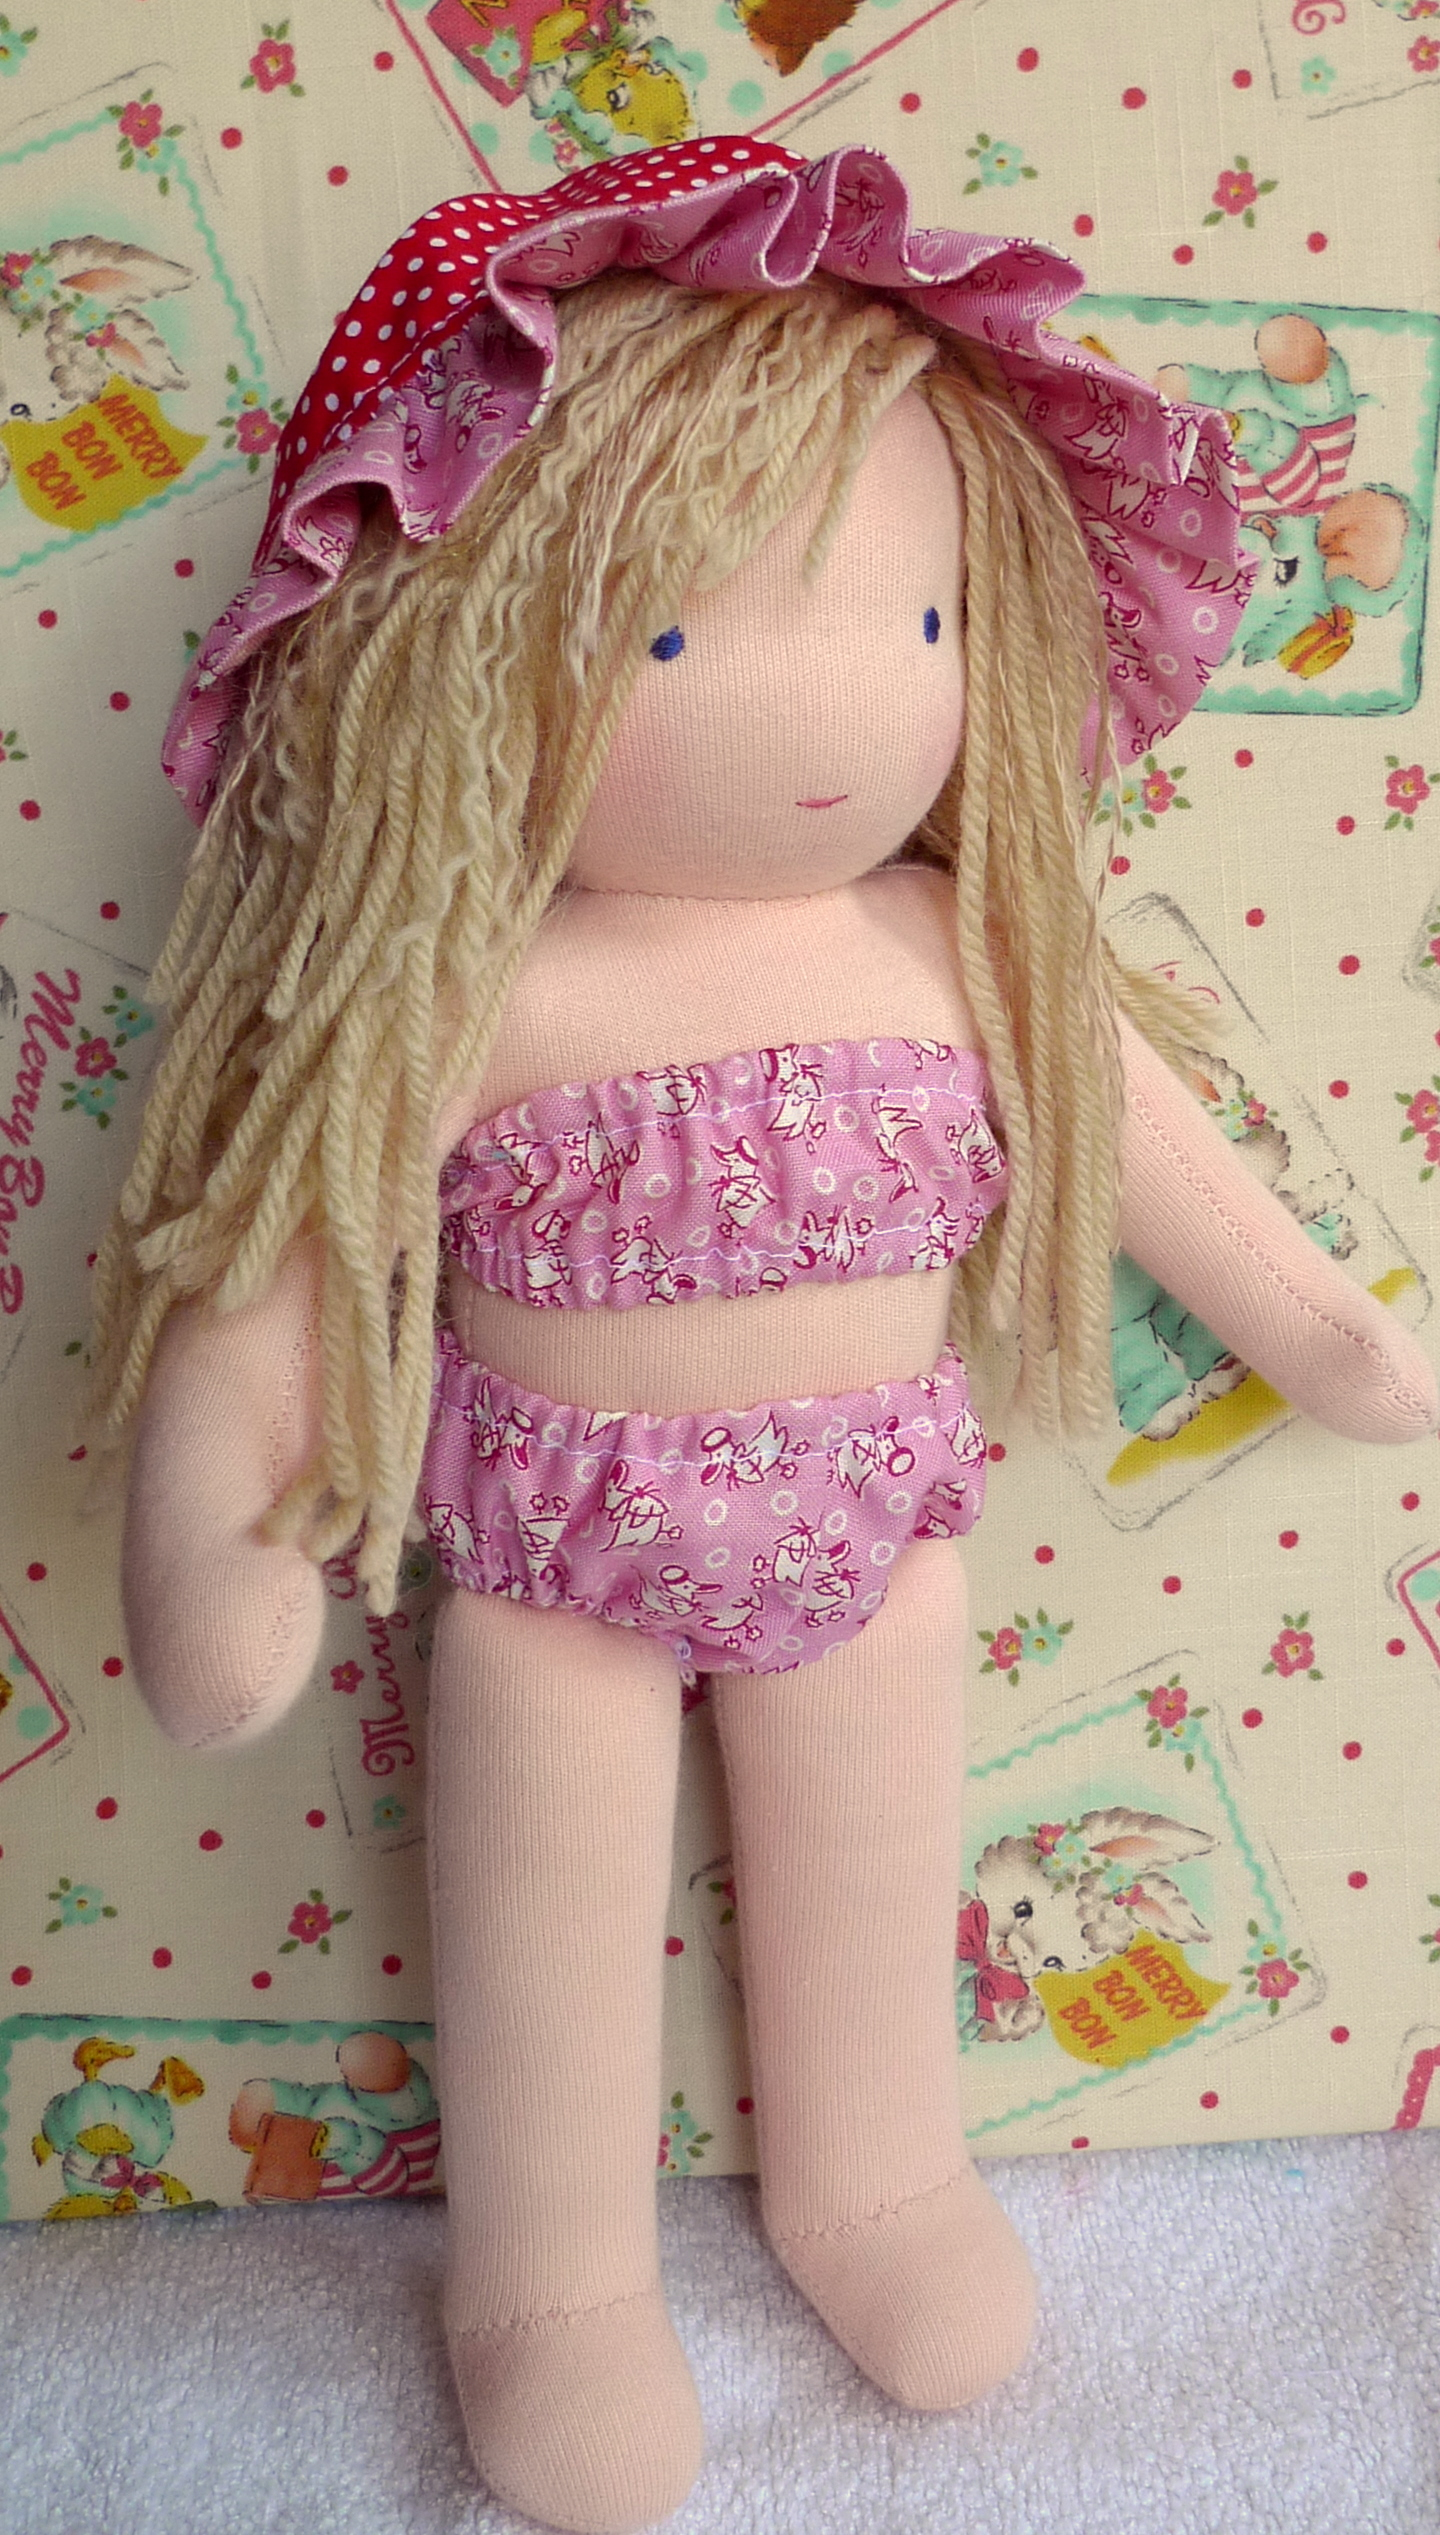 Caitlin's doll - summer outfit